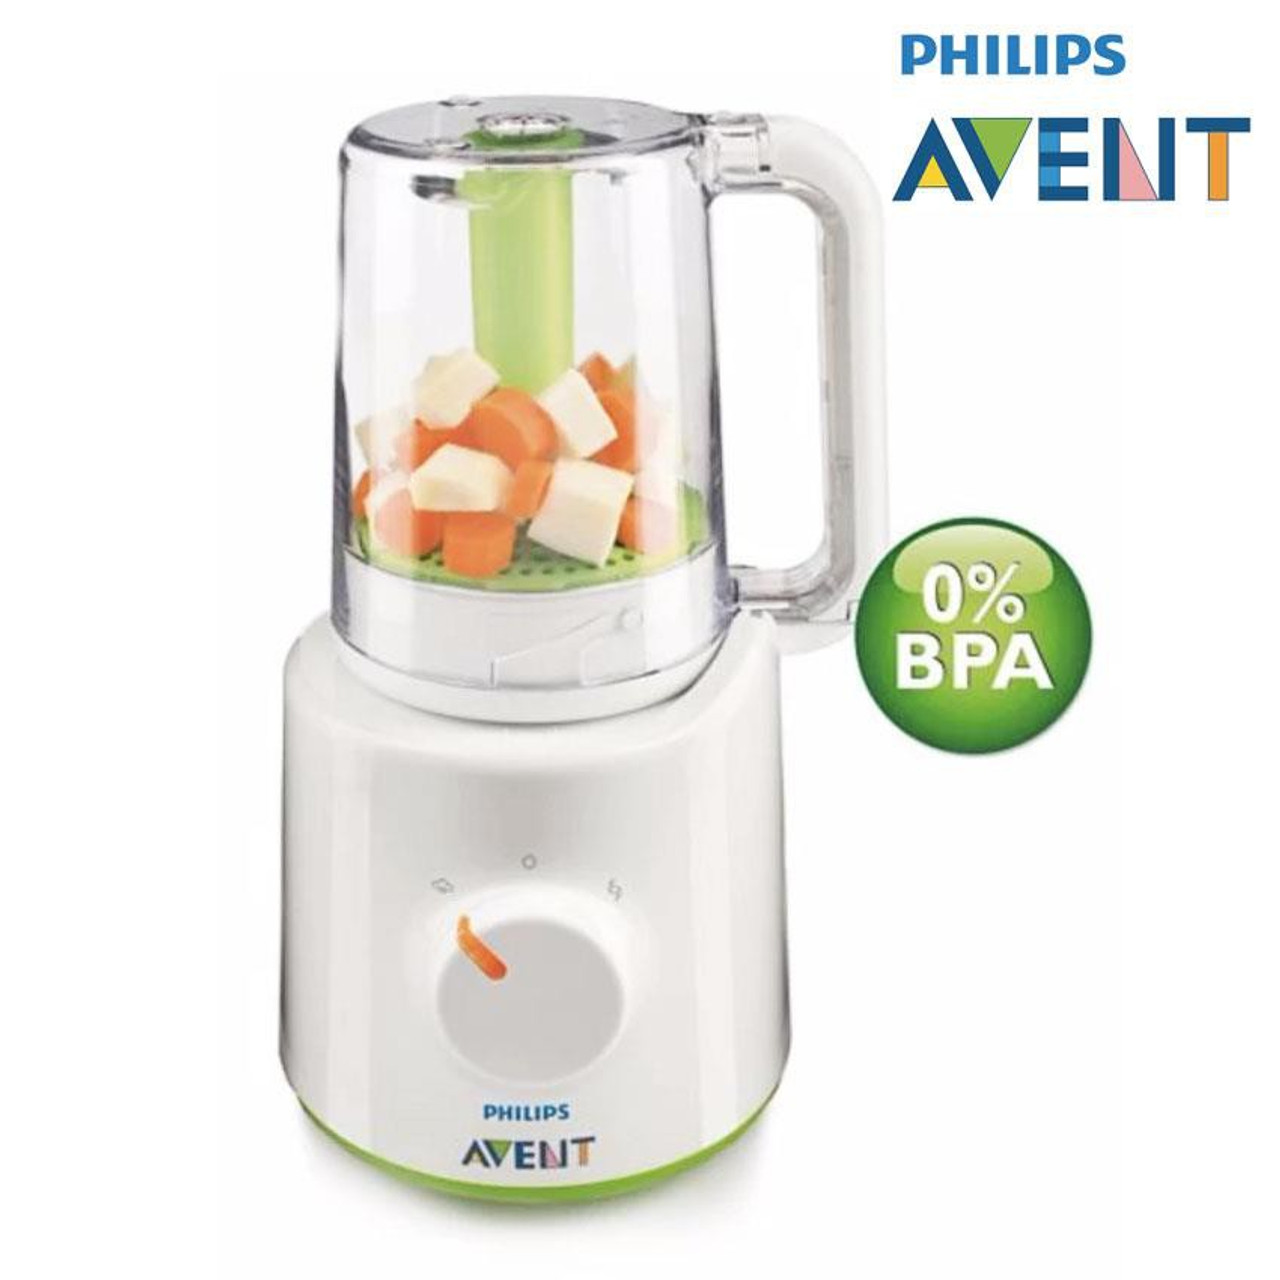 Avent 2 in 1 Healthy Baby Food Maker at Baby Barn Discounts Easily prepare nutritious, homemade baby meals with Philips Avent 2-in-1 healthy baby food maker.